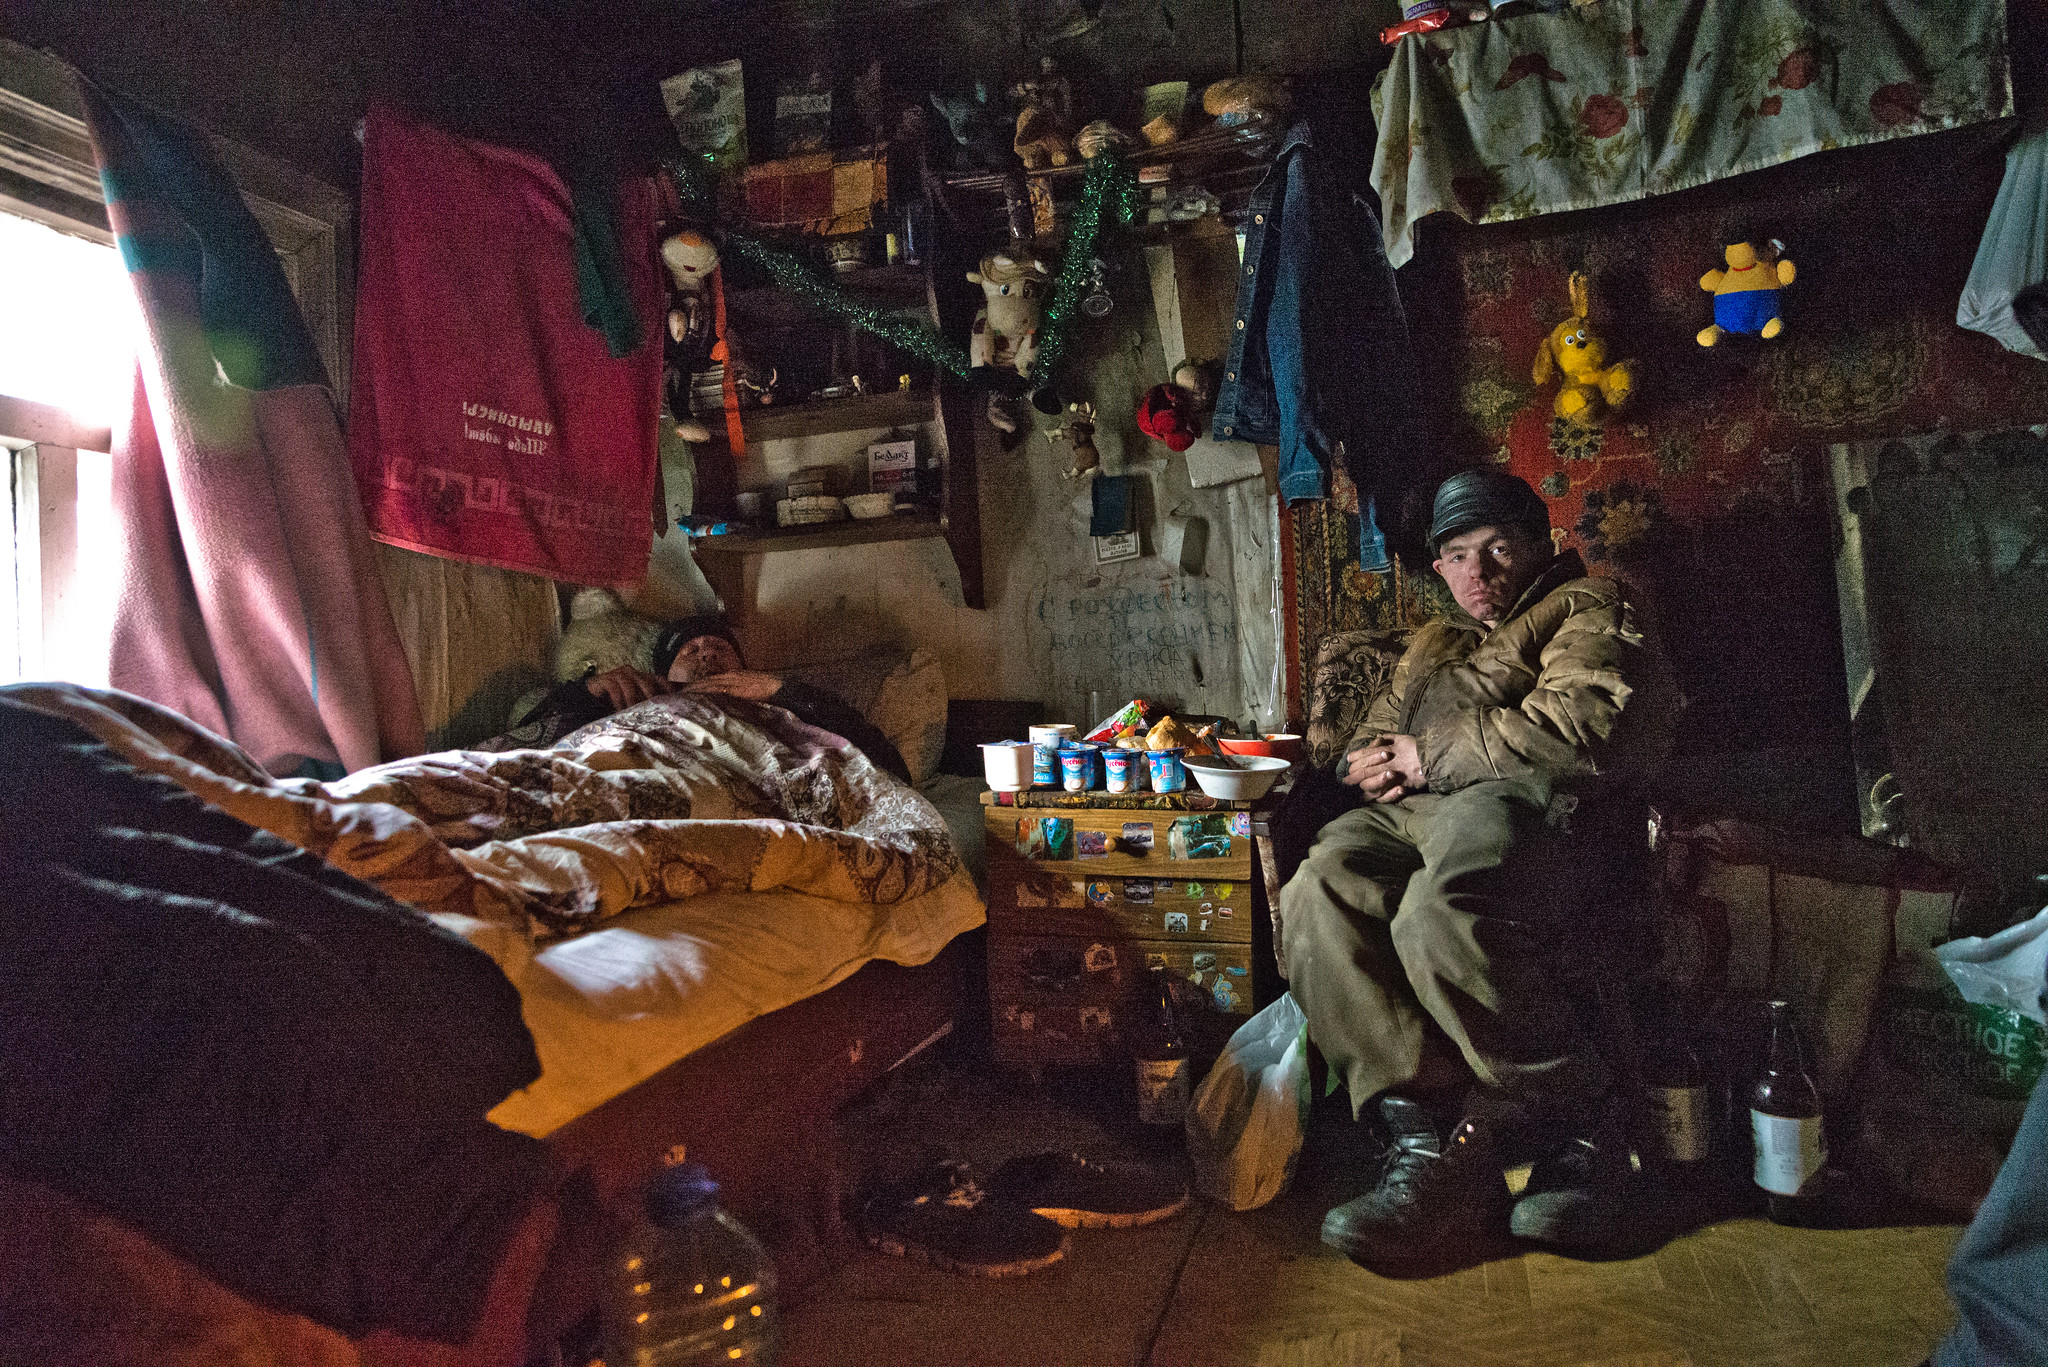 Homeless people living in an abandoned cottage in Minsk (Belarus)